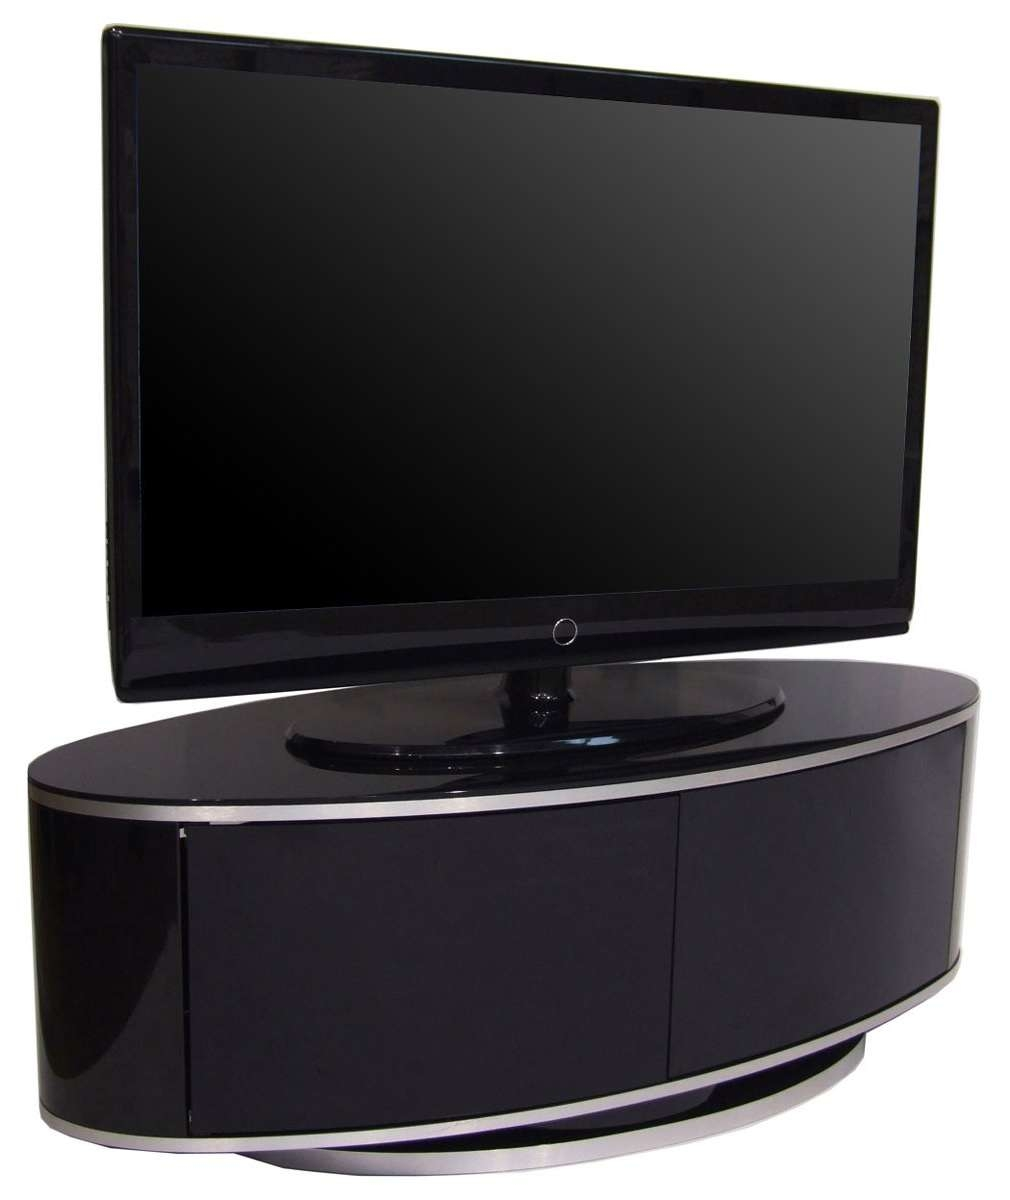 Luna High Gloss Black Oval Tv Cabinet Throughout Shiny Black Tv Stands (View 9 of 15)